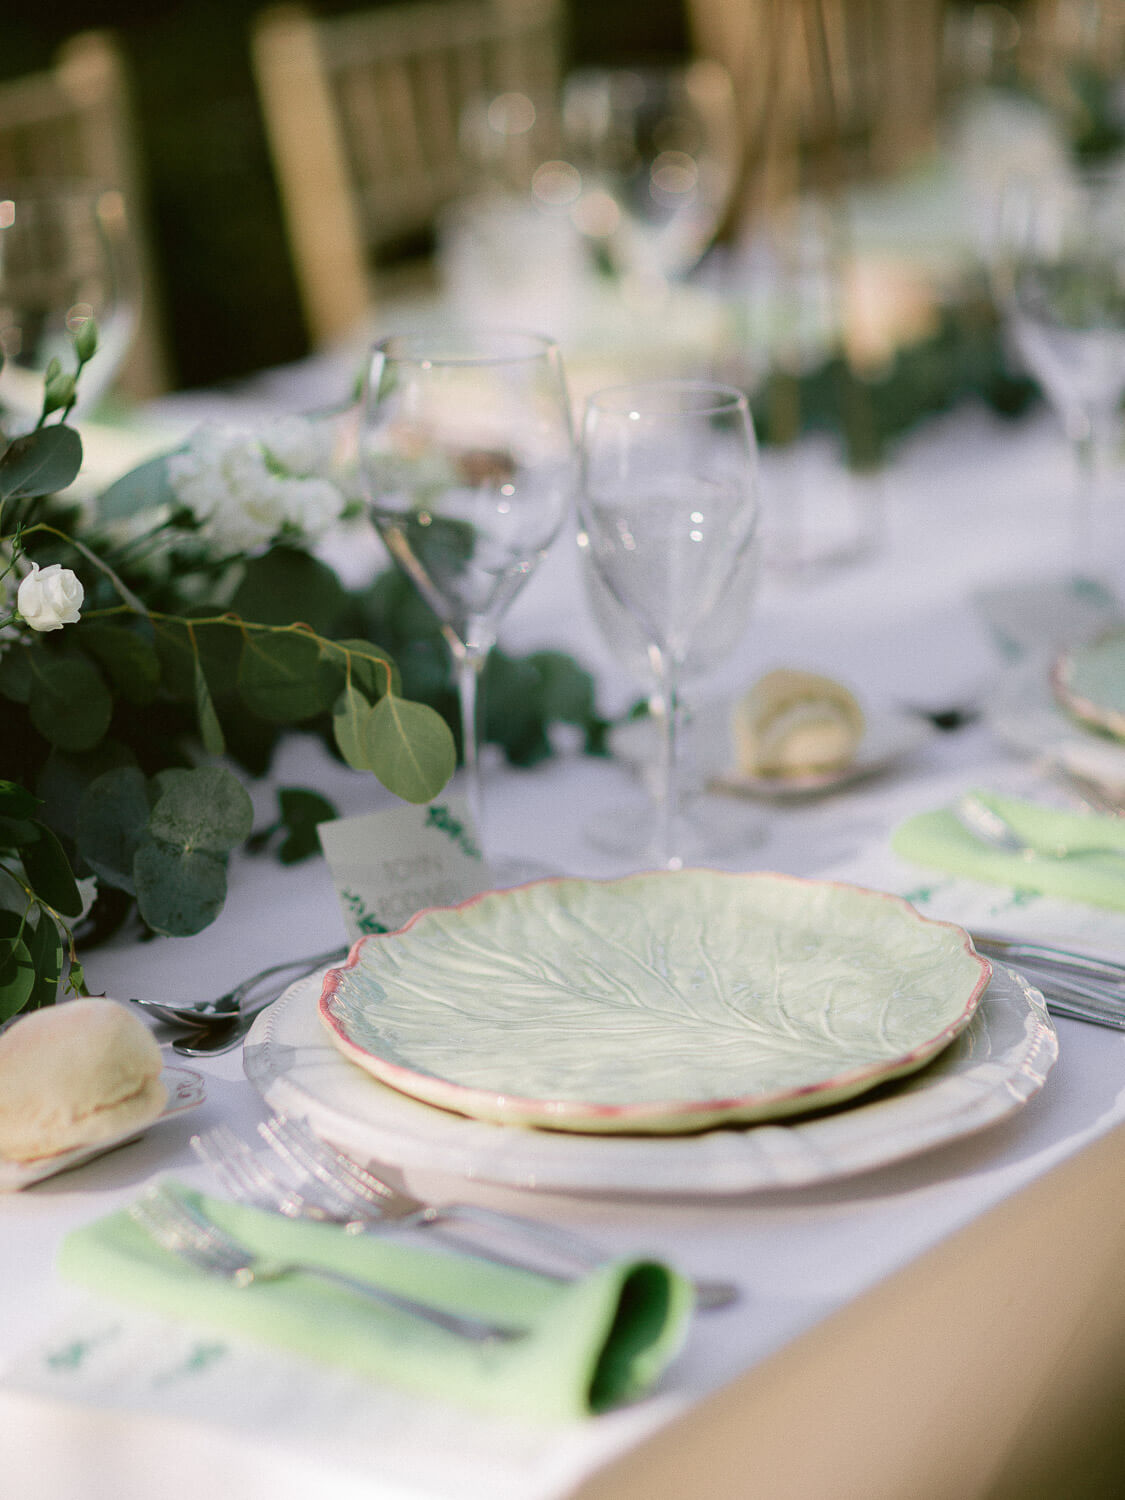 table set details for outdoor wedding reception dinner by Portugal Wedding Photographer